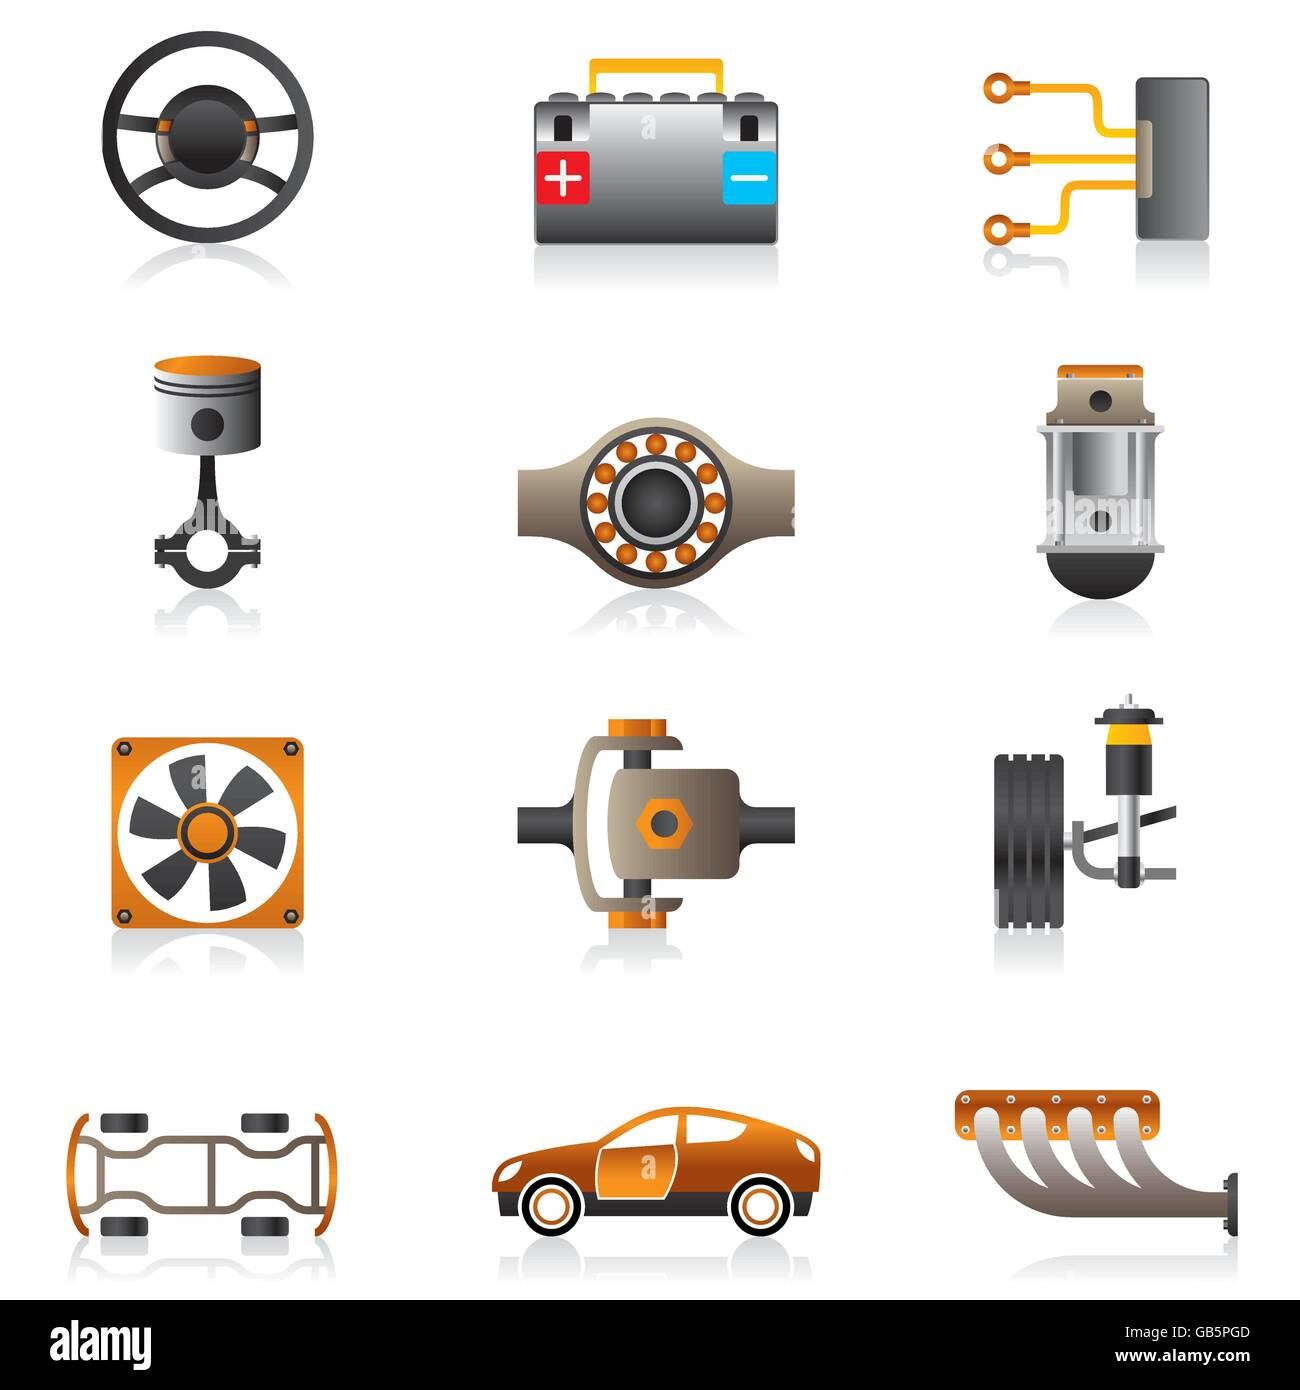 Parts of the car engine - vector illustration Stock Vector Art ...